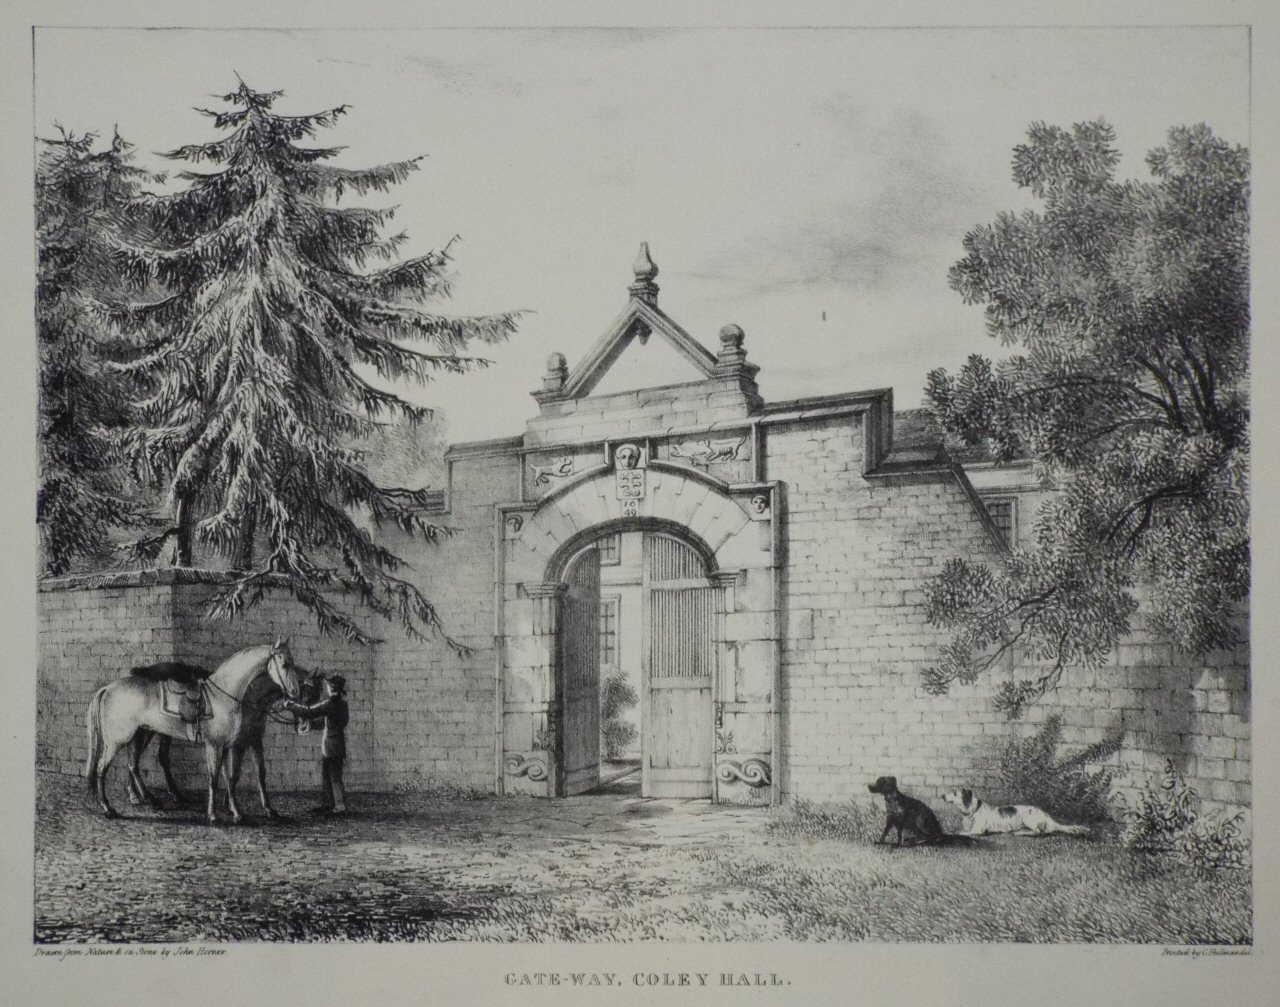 Lithograph - Gate-way, Coley Hall. - Horner